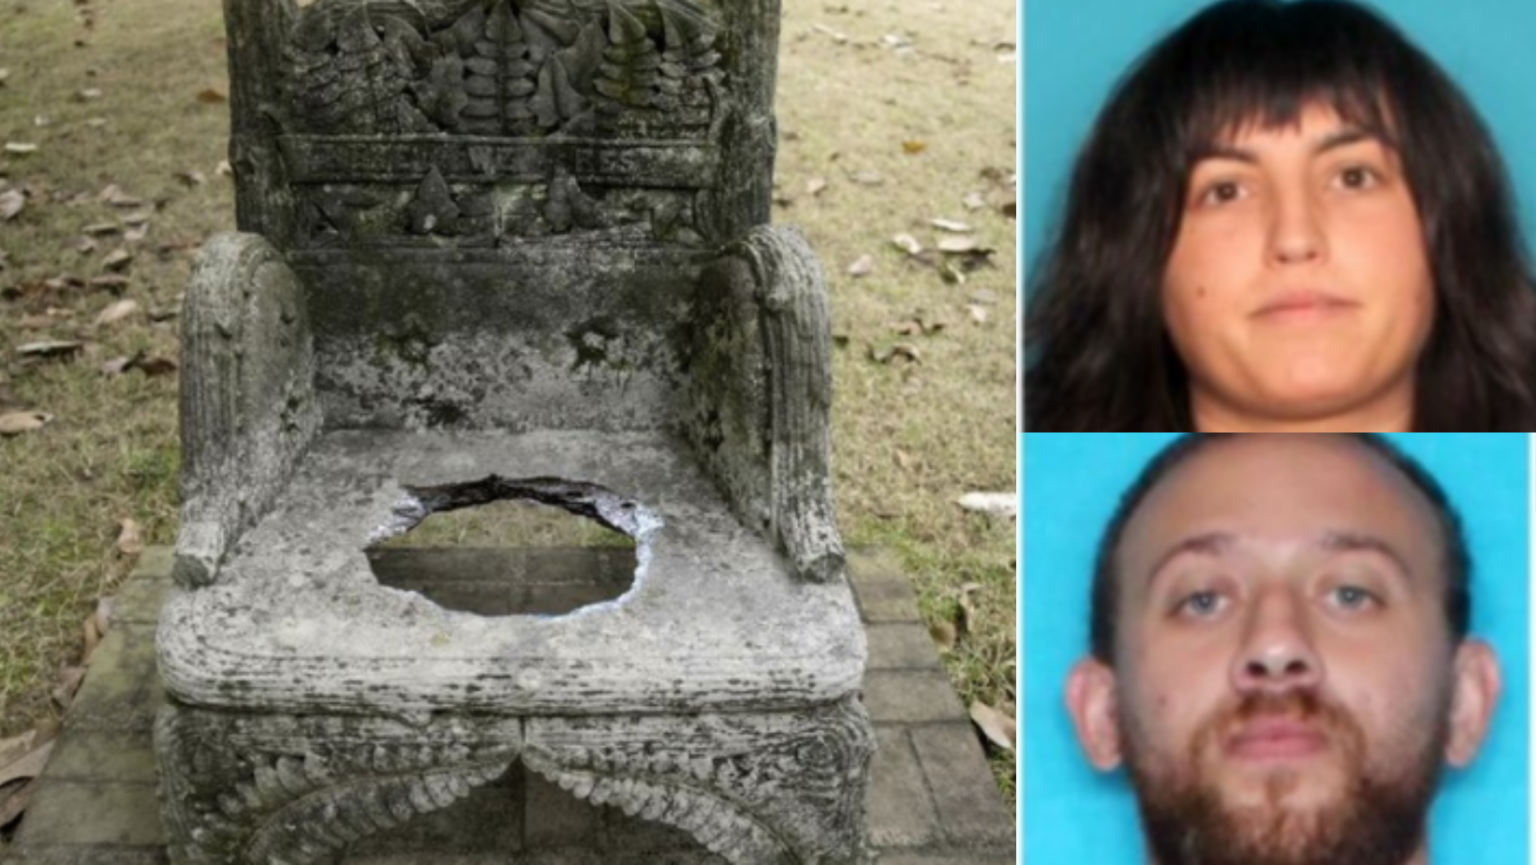 Suspects in 'anti-racist' group arrested for stealing cemetery monument, holding it for ransom in support of cop-killer